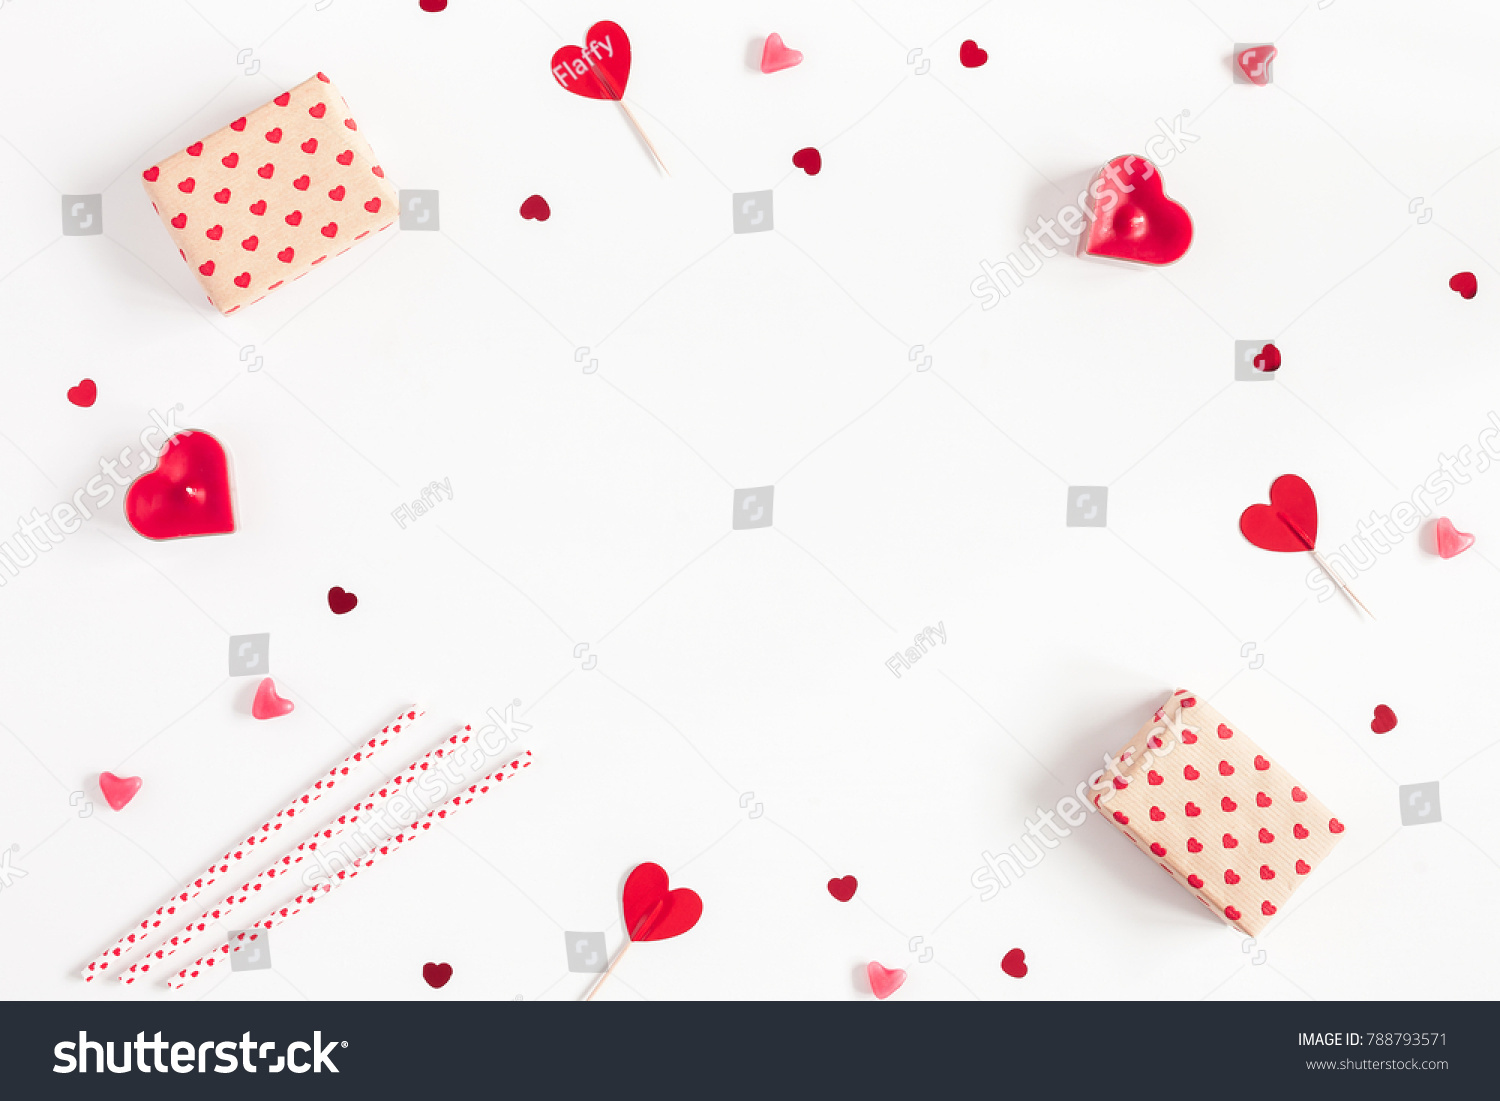 Valentine's Day. Frame made of gifts, candles, confetti on white background. Valentines day background. Flat lay, top view, copy space. #788793571